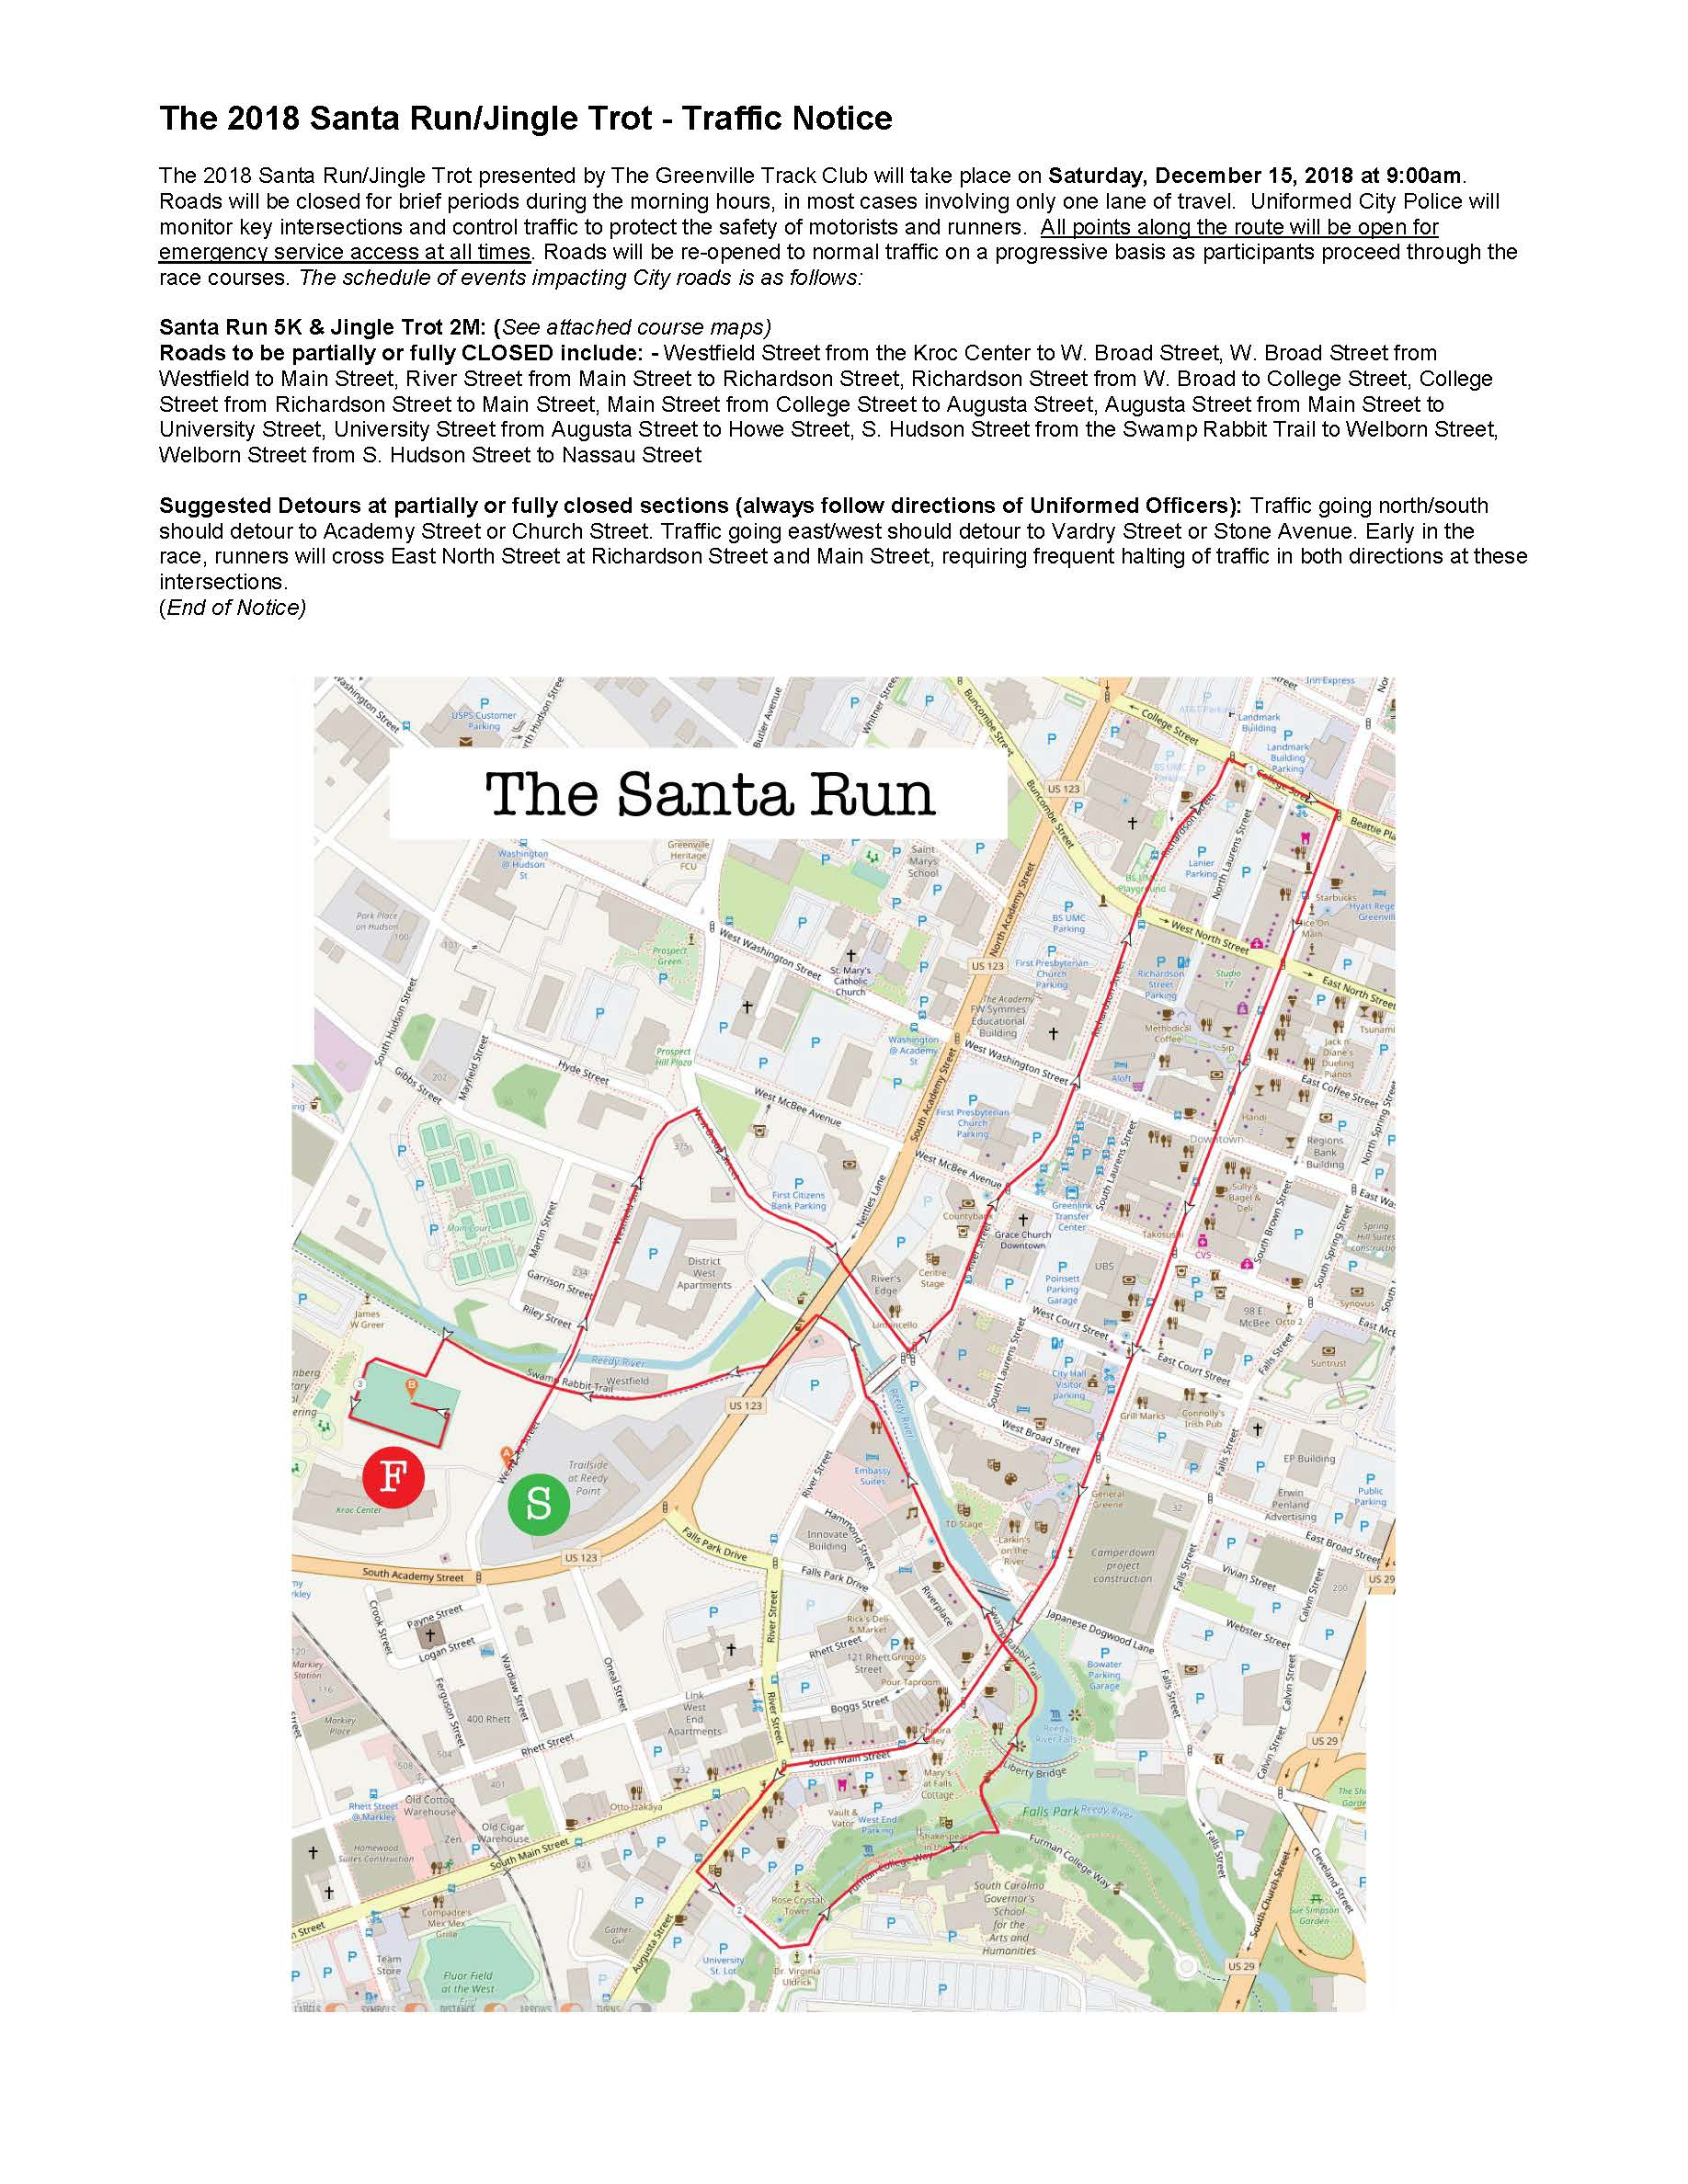 Santa-Run-2018-Traffic-Notice_Page_1